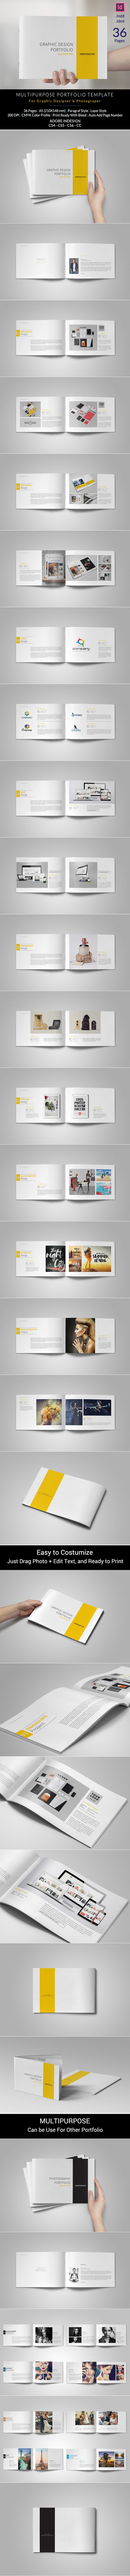 graphic design portfolio template on behance - Graphic Design Project Ideas For Portfolio